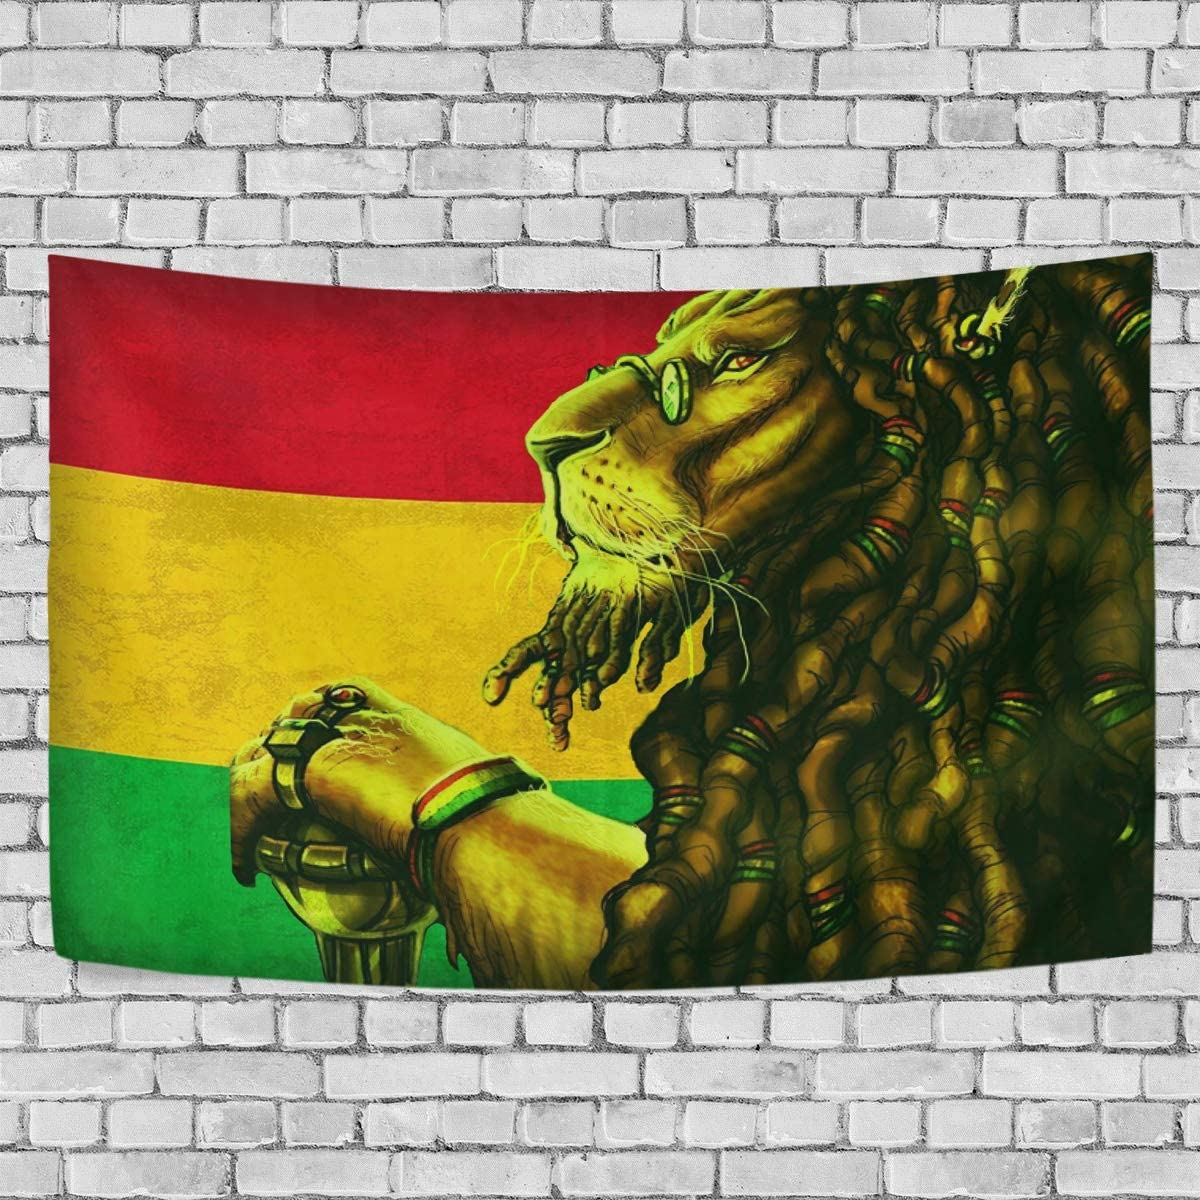 AUISS Tapestry Wall Hanging Leon Rastafari Bedding Wall Blanket Art Room Decor Bedding Rug Bedspread Kids Living Dorm Tablecloth Cover